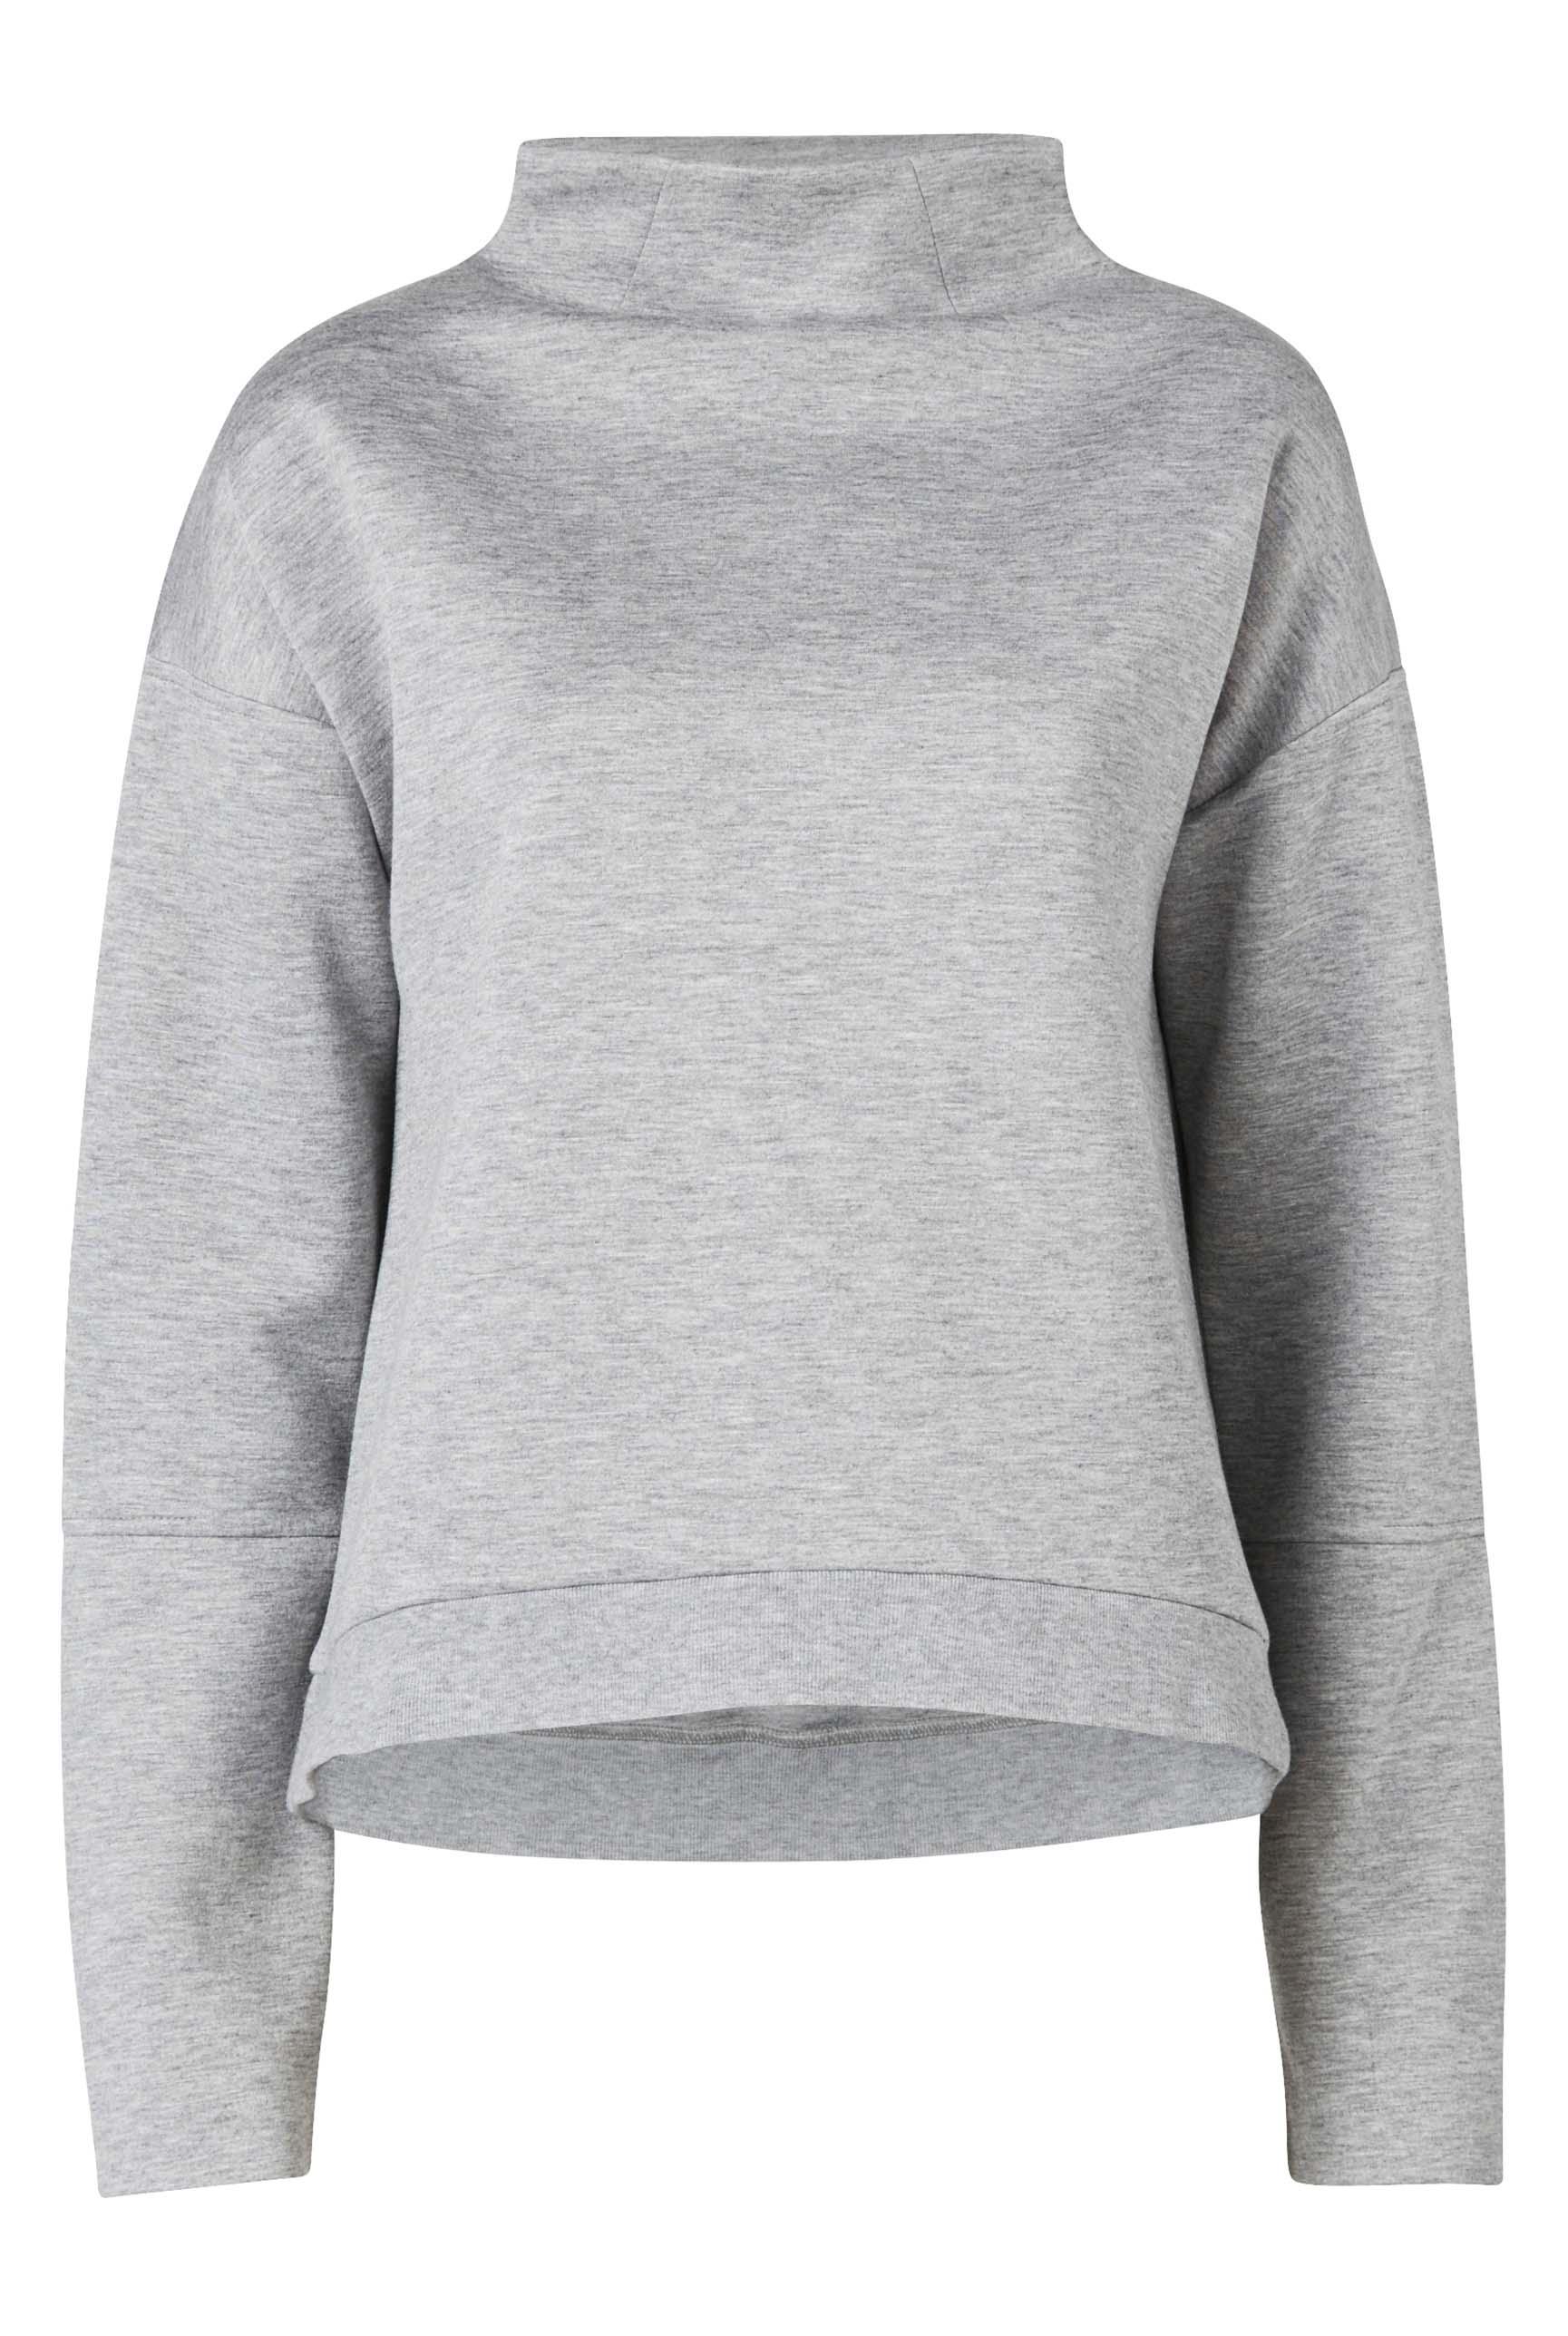 60190061_Witchery First Edition Haki Sweat, RRP$139.90